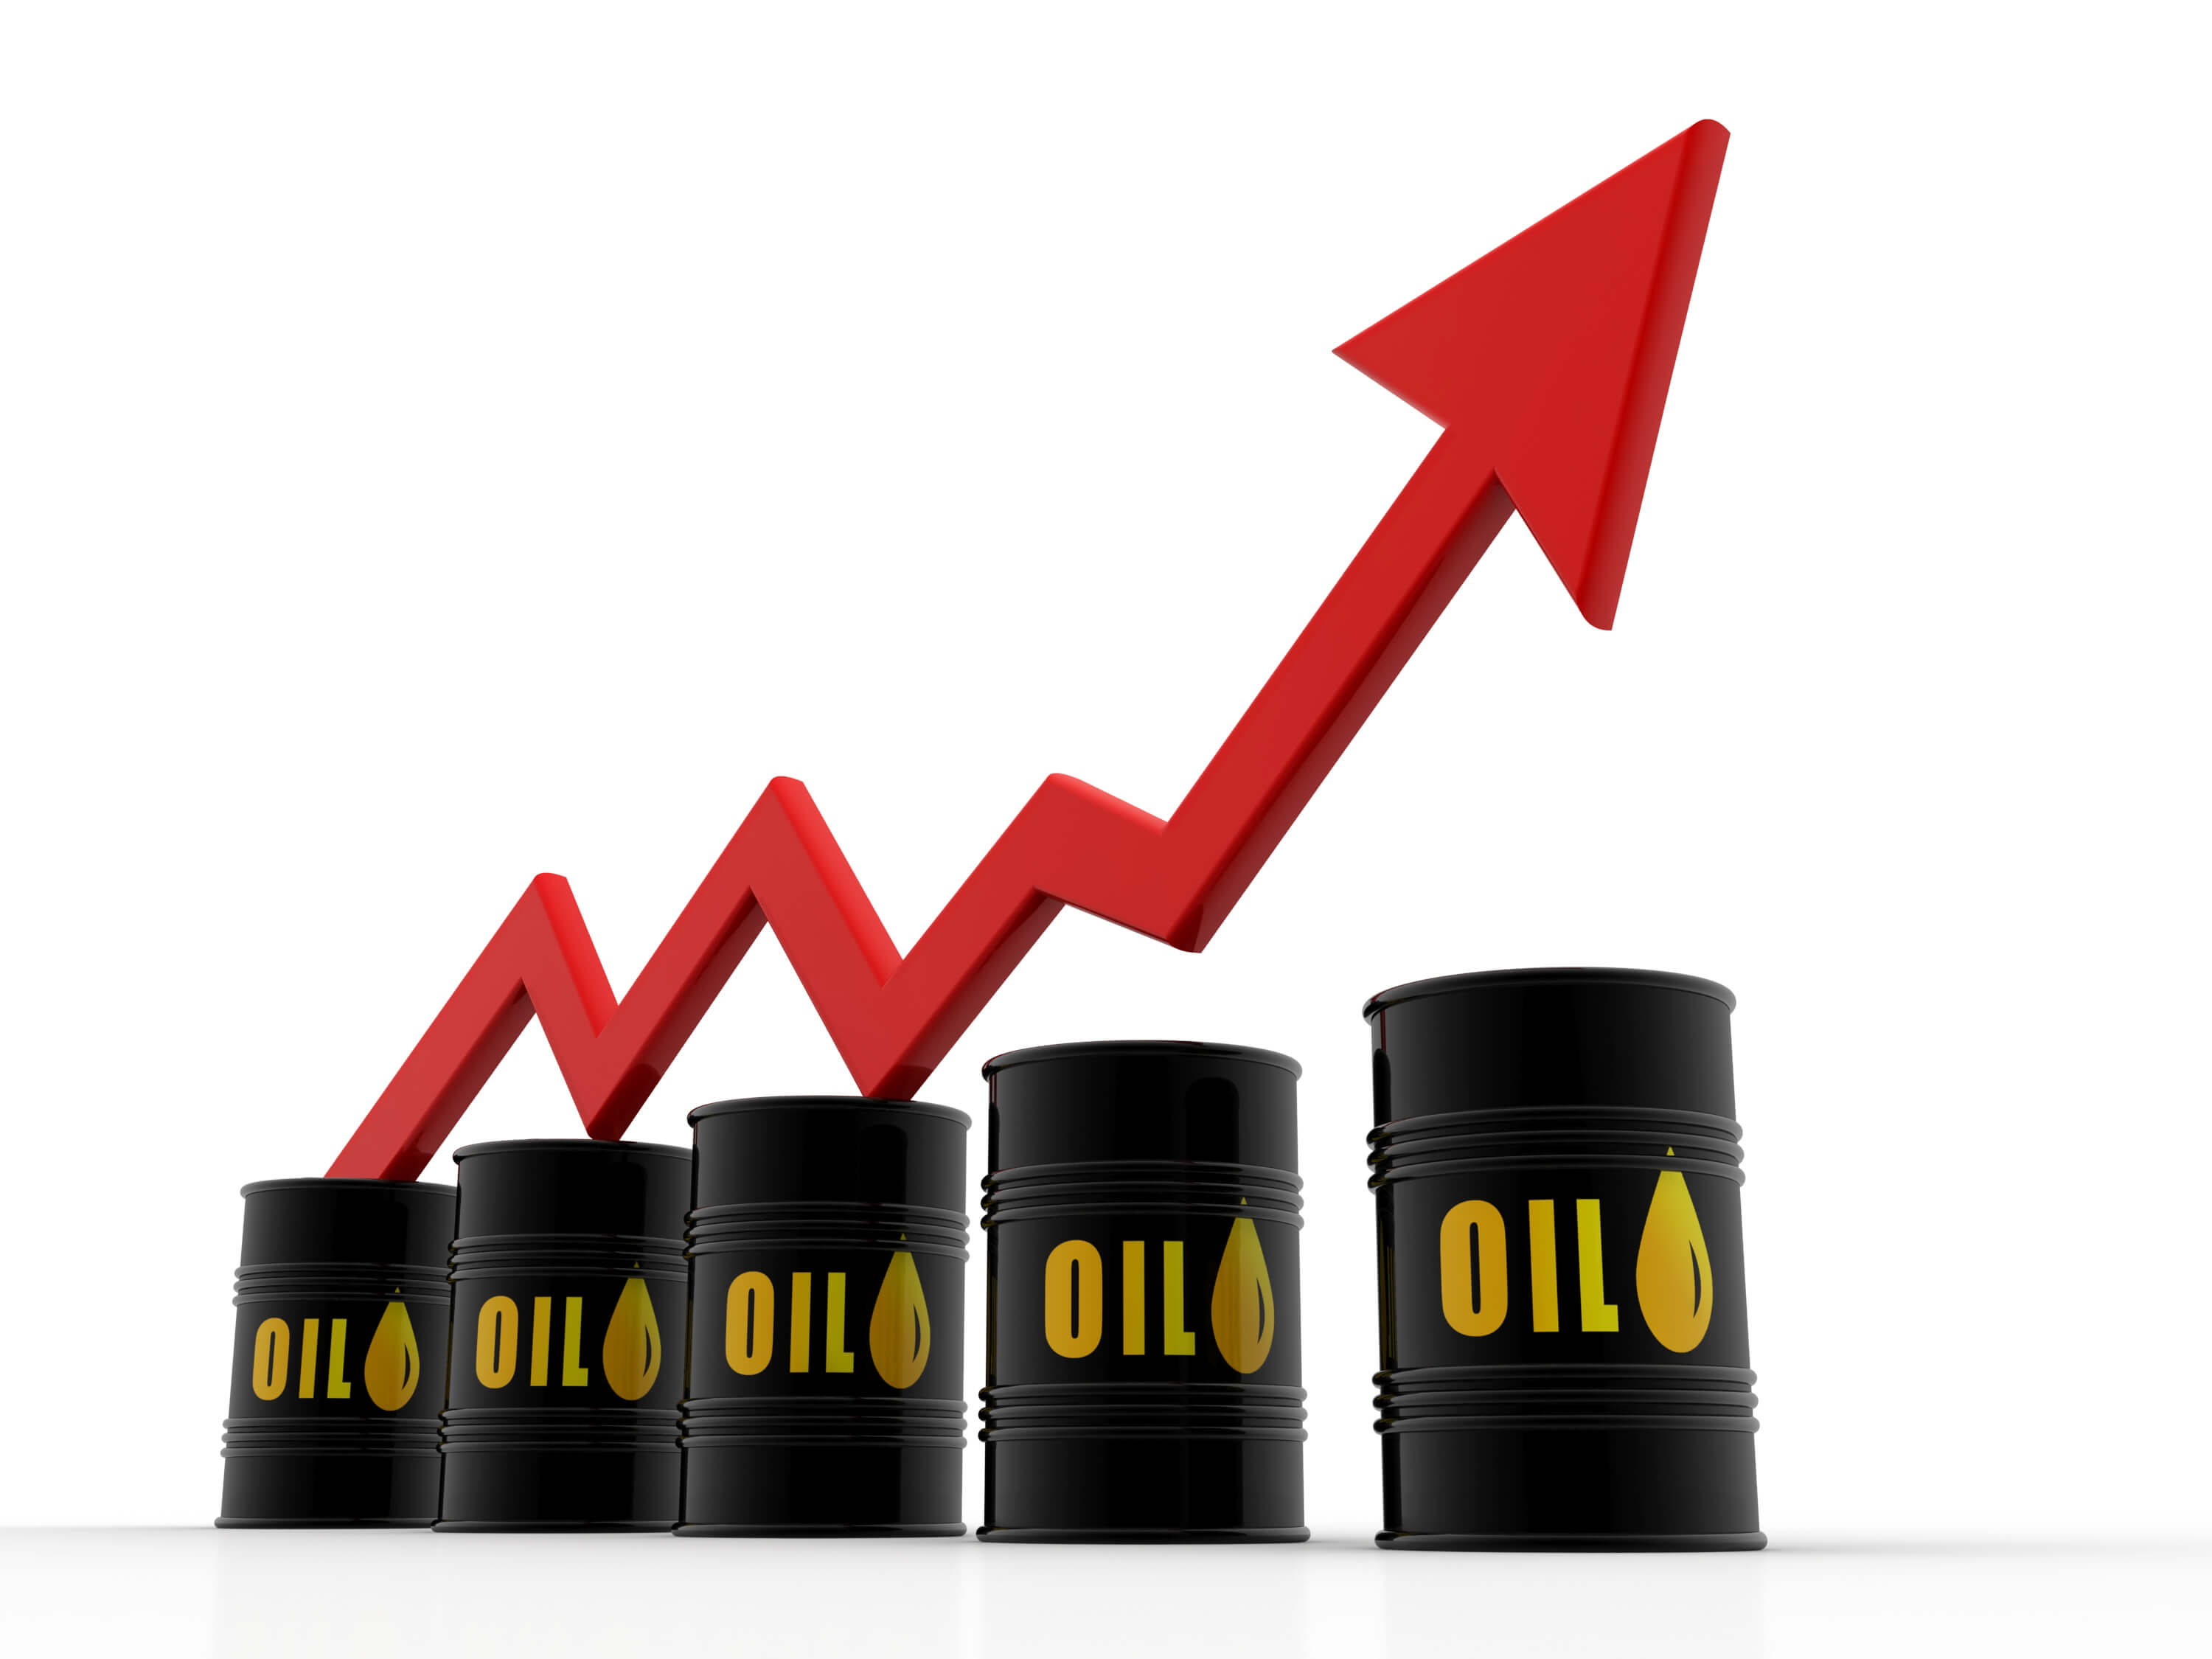 Oil prices on August 21